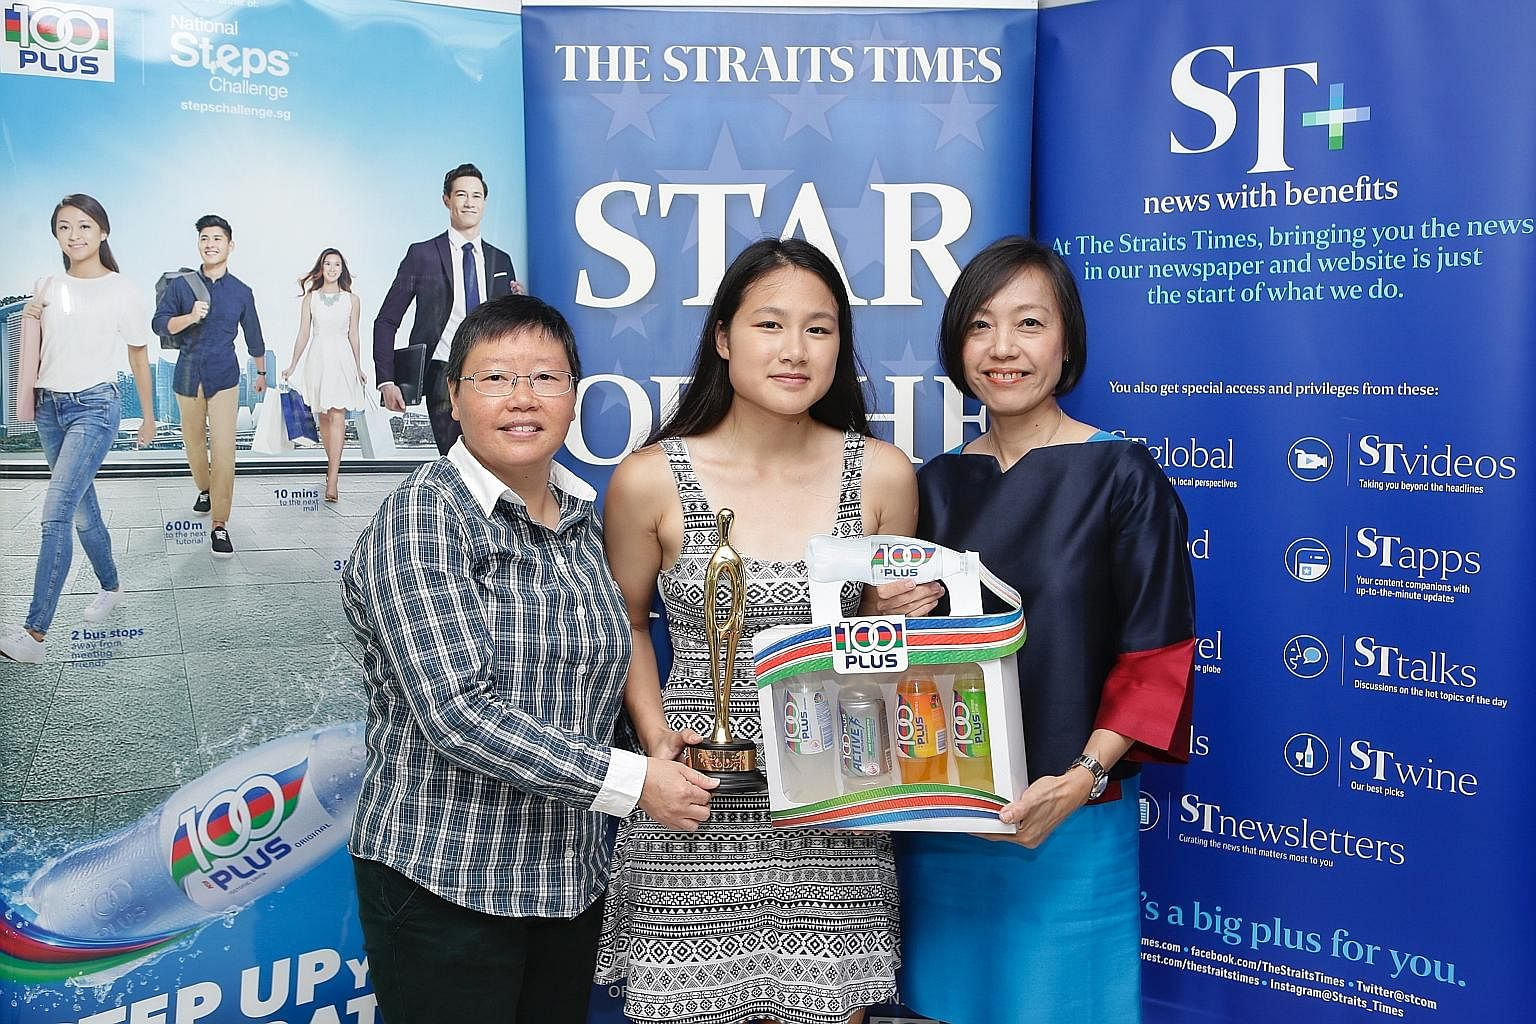 Cheyenne Goh, with ST sports editor Lee Yulin (left) and F&N Foods general manager Jennifer See, proudly holding her trophy and hamper for being the ST Star of the Month for November. She qualified for the Winter Games mainly on the strength of her 2